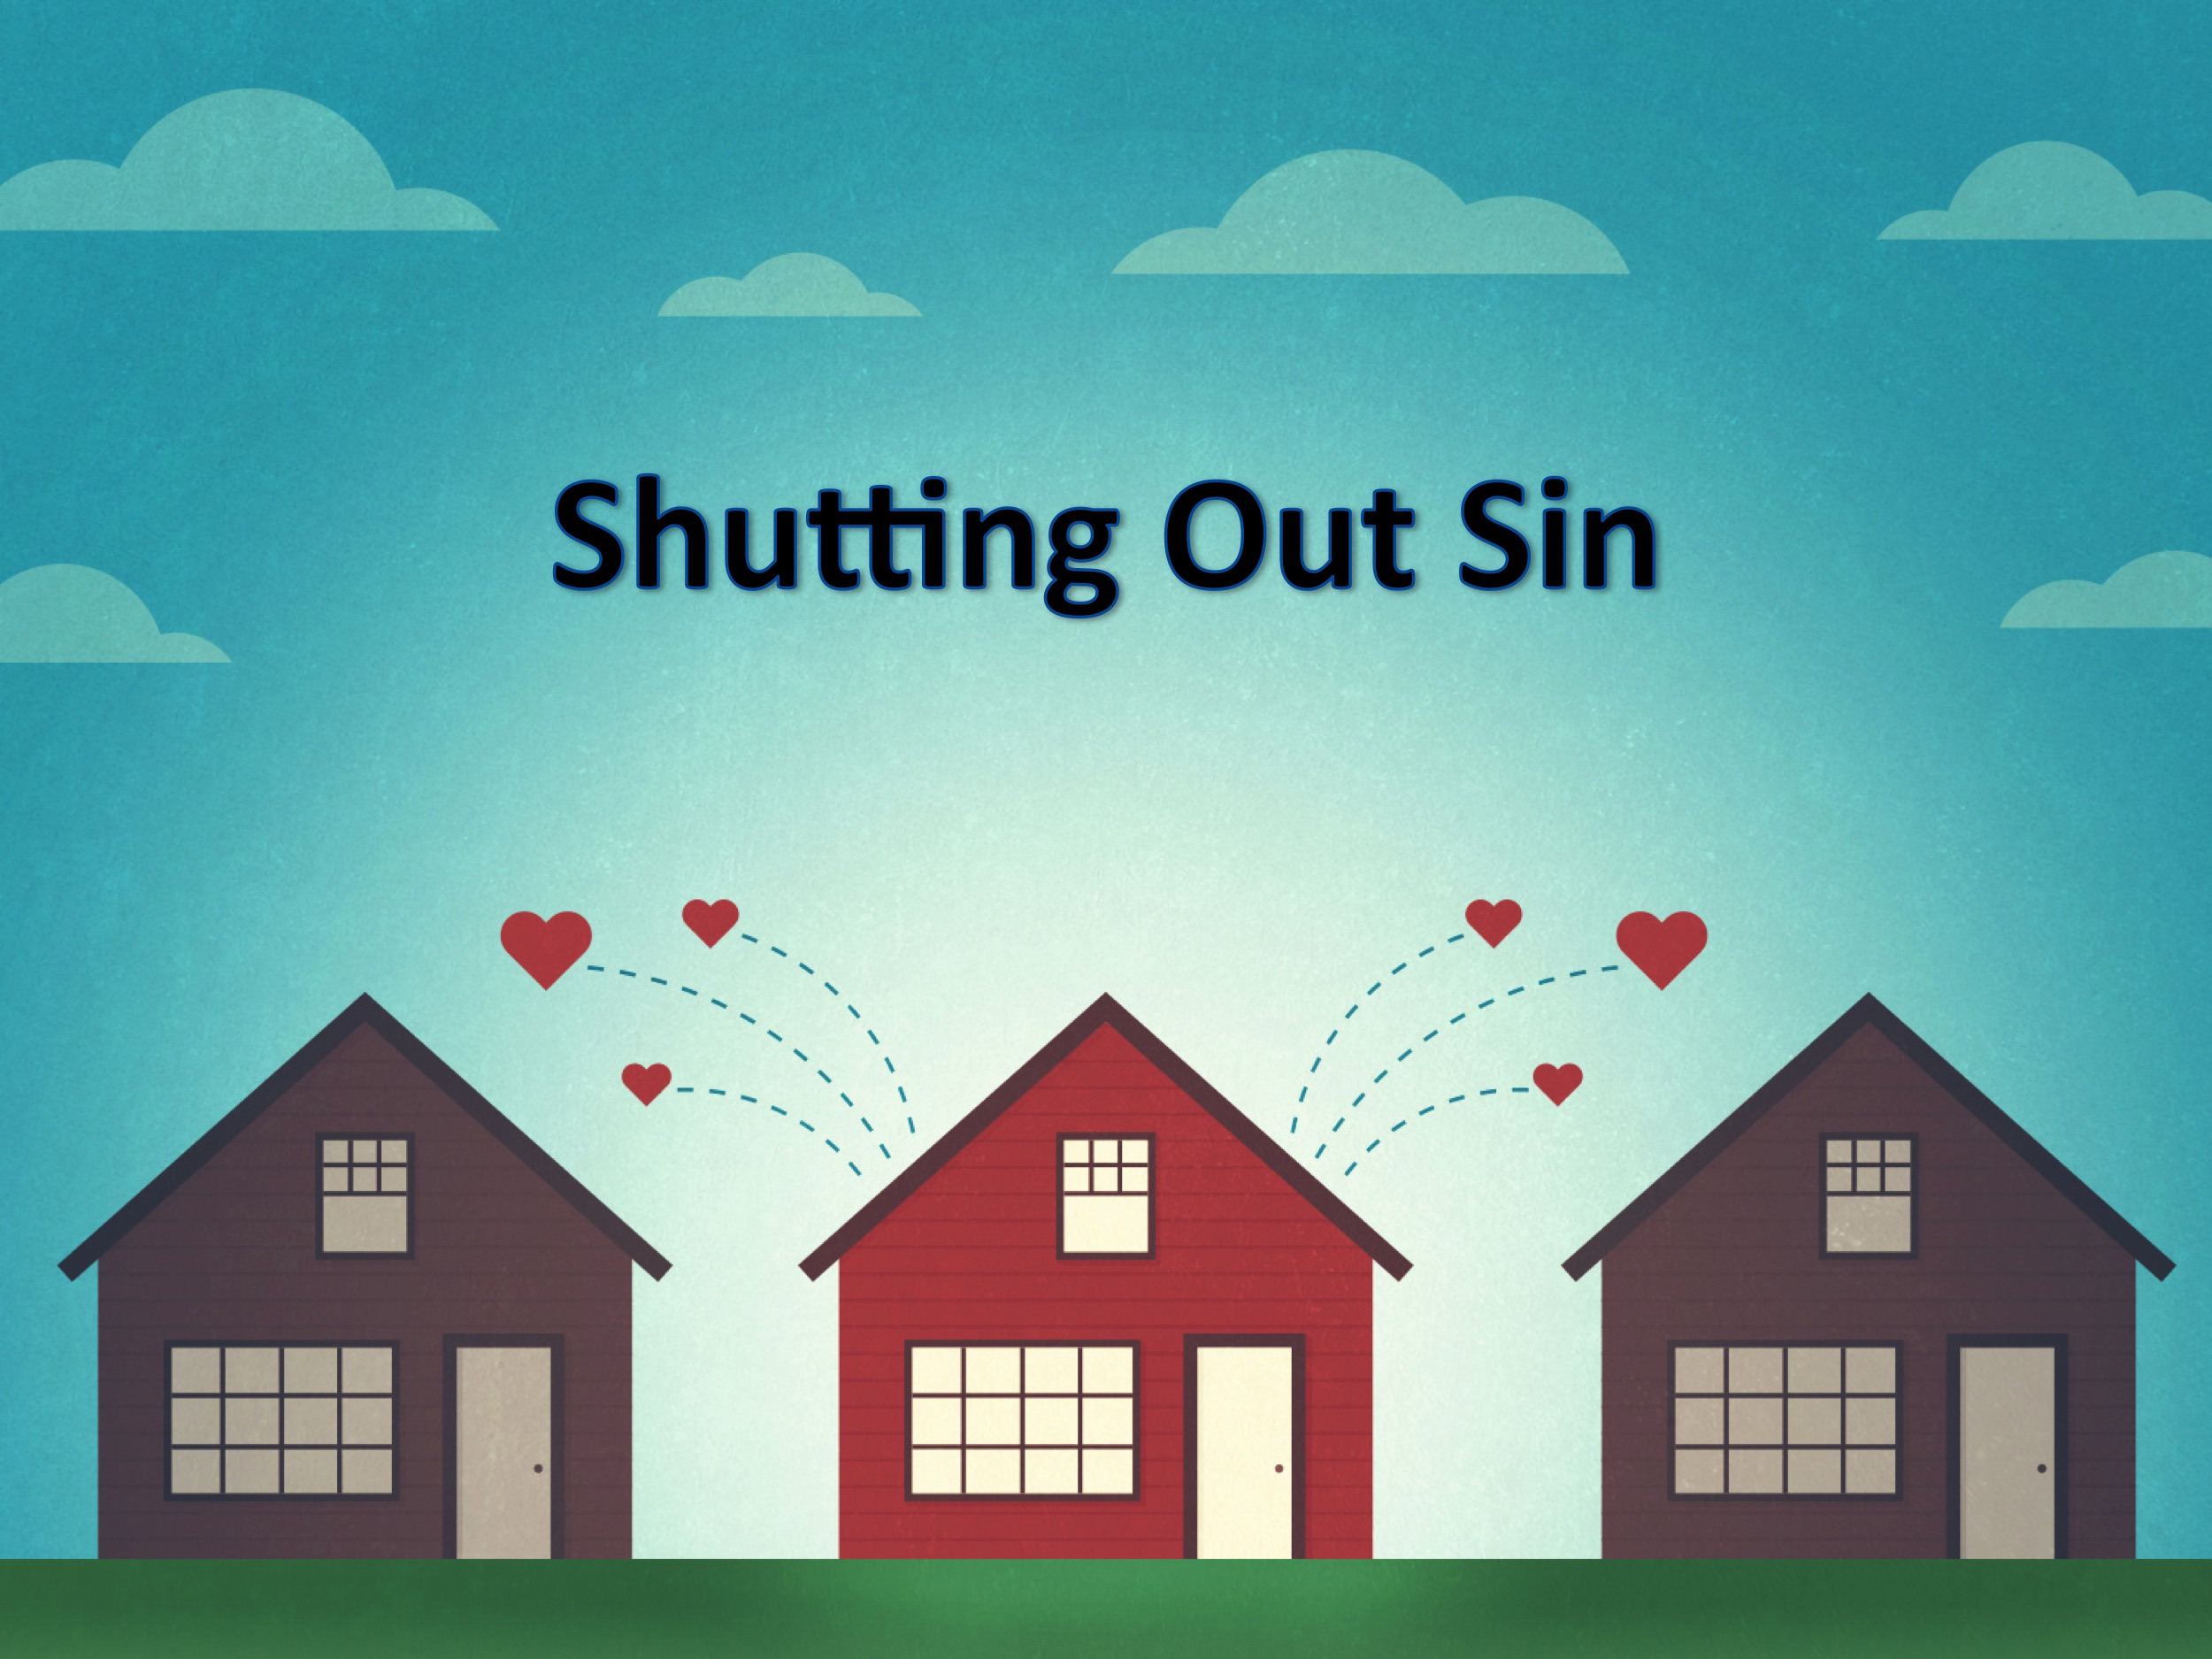 Shutting Out Sin P2 7/21/2017 8:31:10 AM